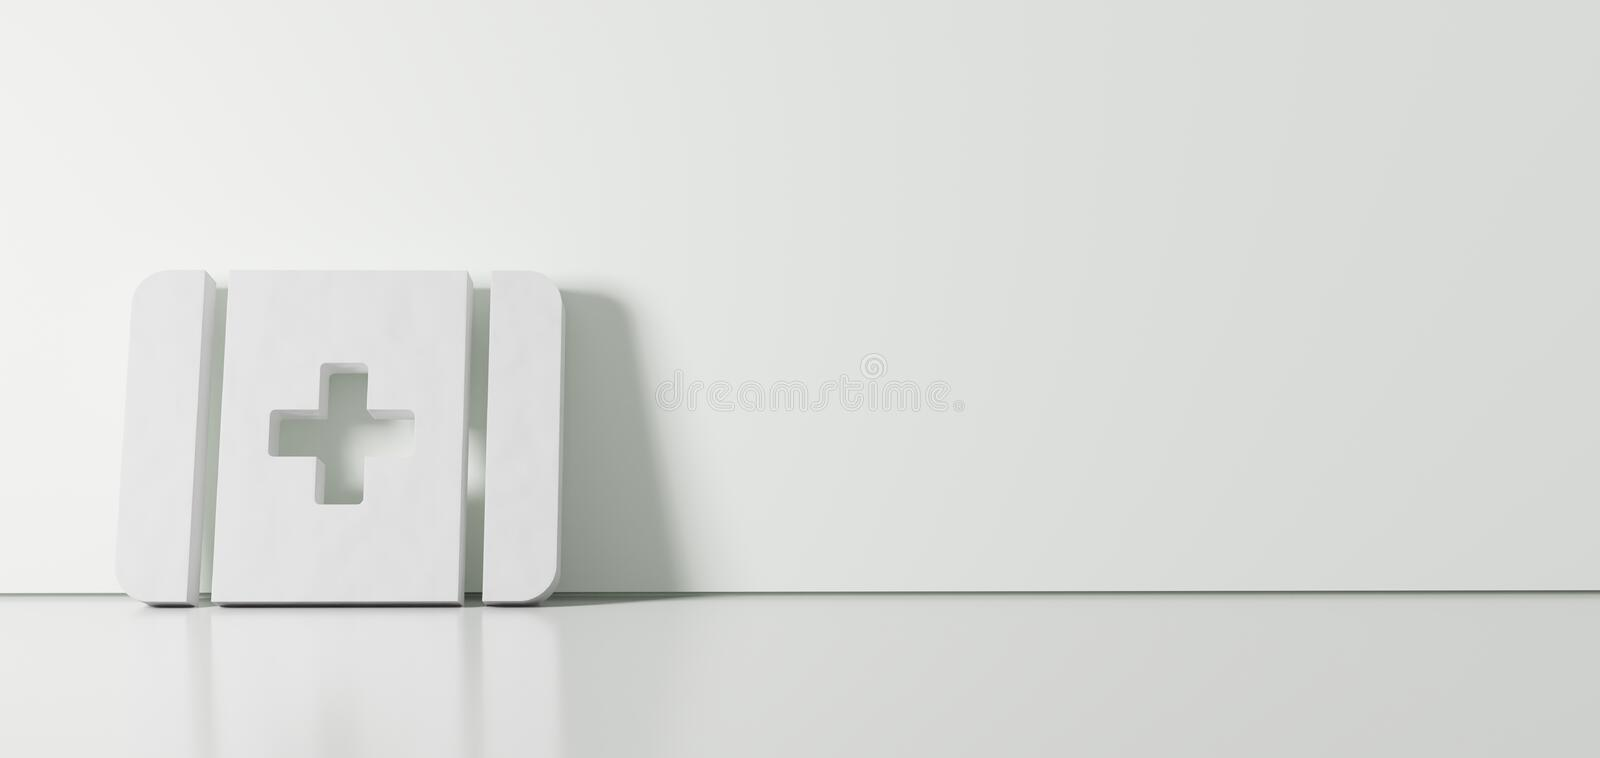 3D rendering of white symbol of first aid icon leaning on color wall with floor reflection with empty space on right side royalty free illustration